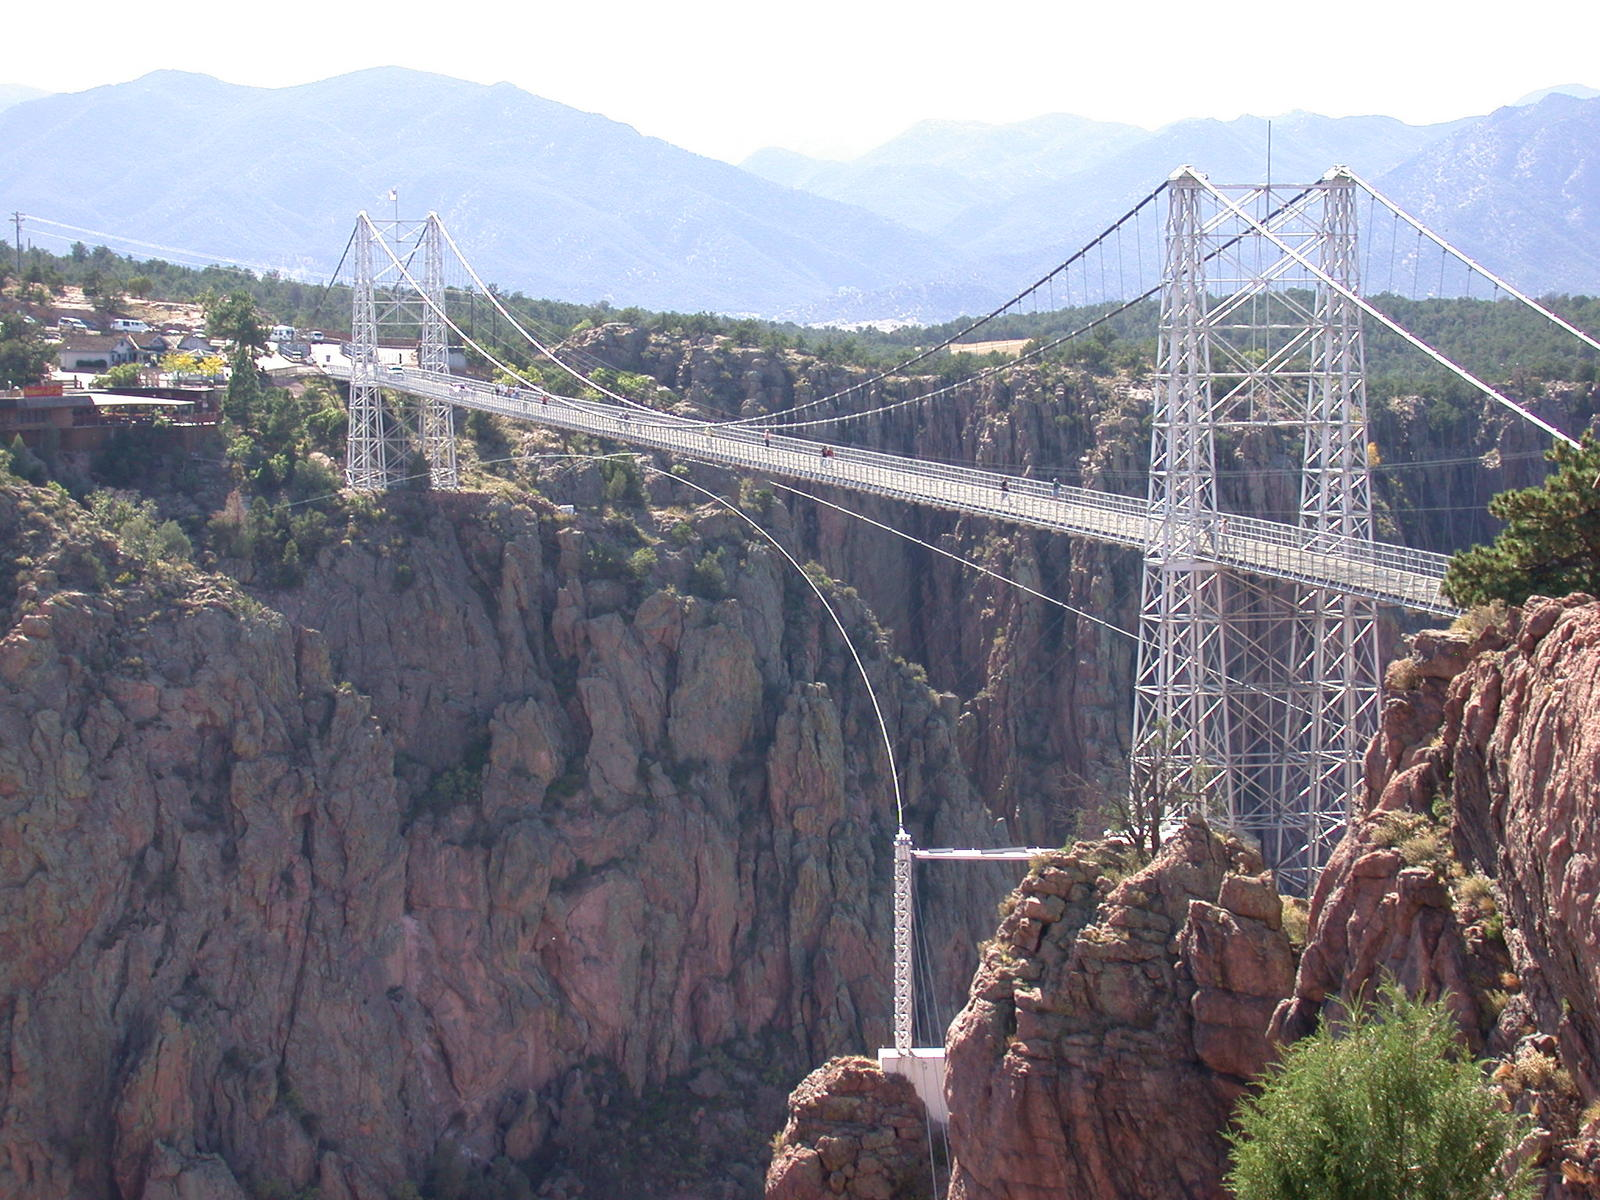 The Most Scariest Picture In The World Scariest bridges, colorado